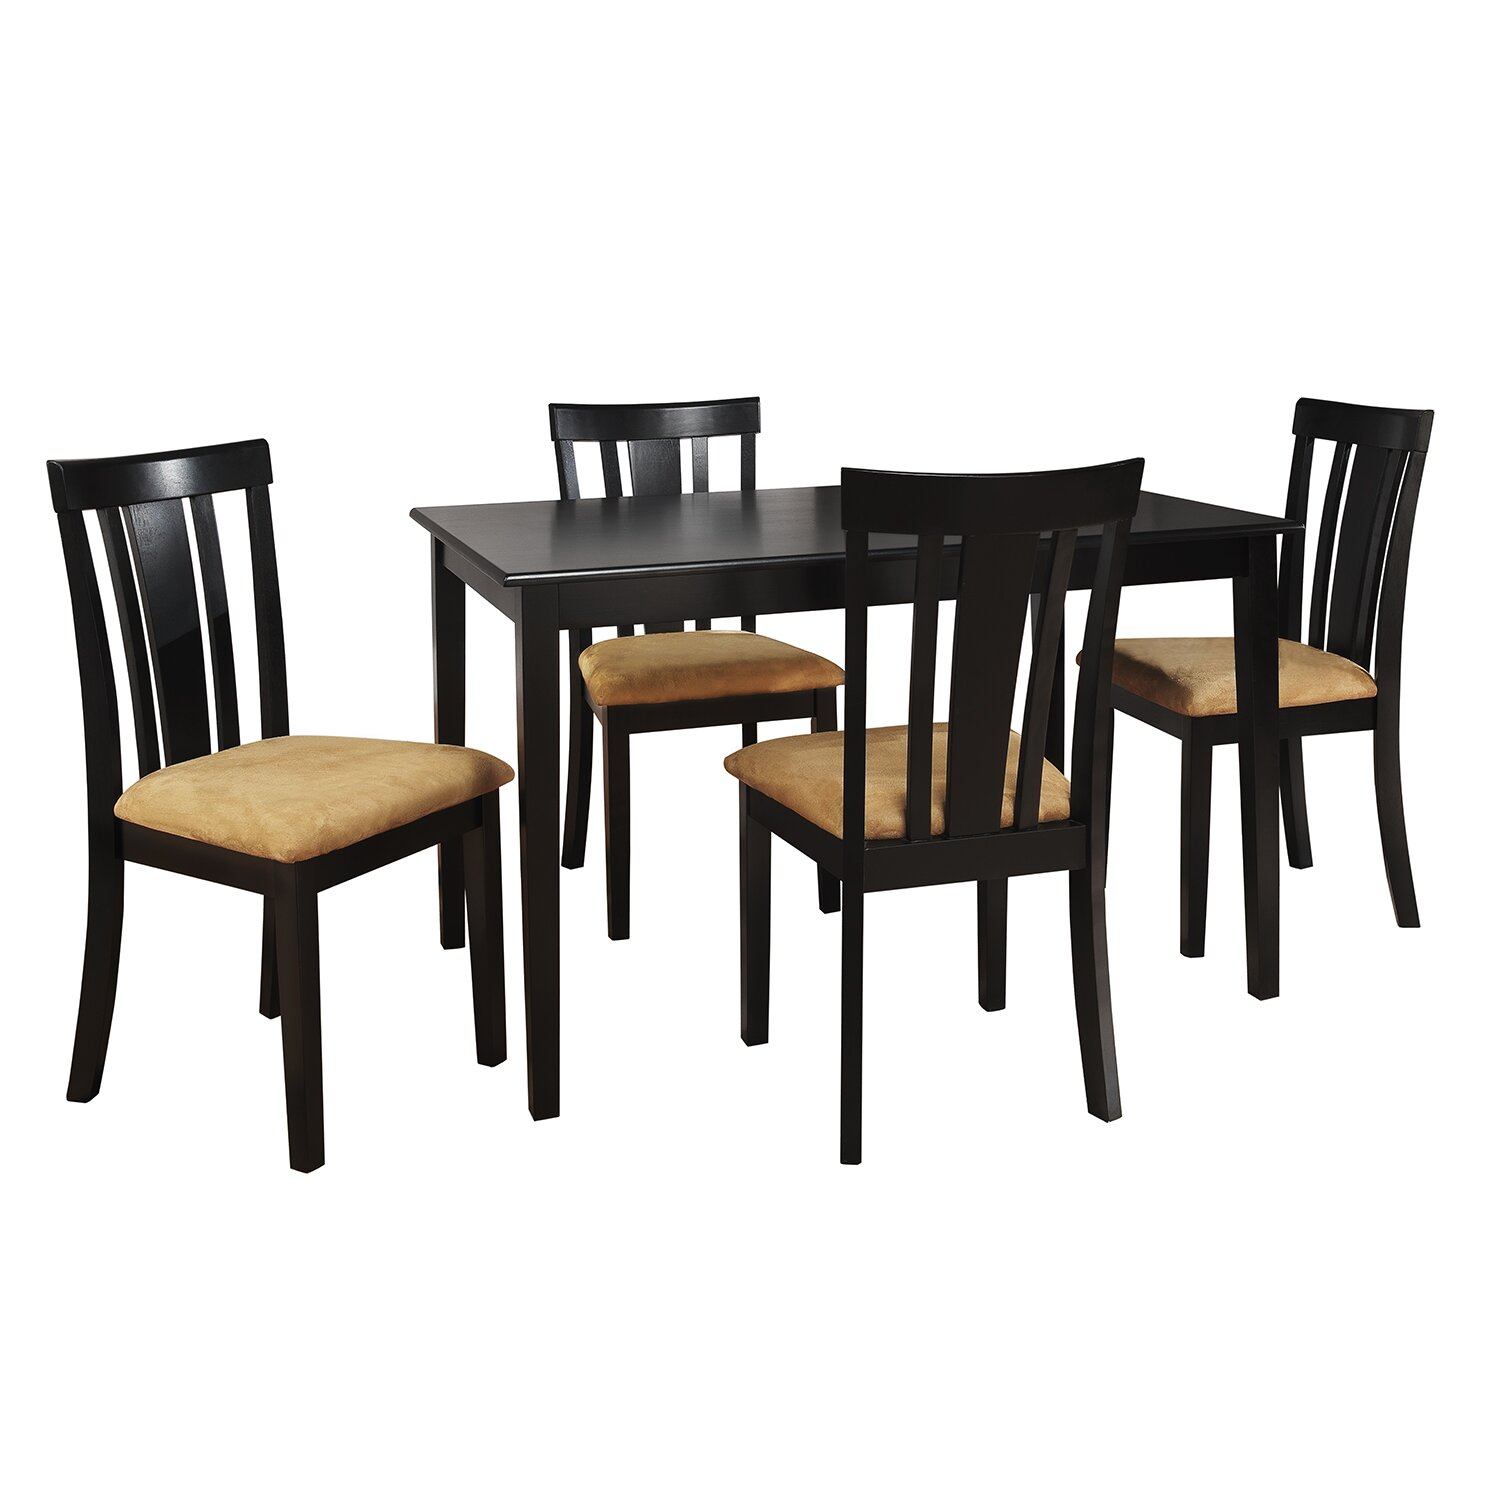 Kingstown Home Jeannette 5 Piece Dining Set & Reviews. 8 Drawer Chest. Custom Pc Desk. Map Drawers Cabinet. Replacement Kitchen Cabinet Drawers. Office Max Desk. Desk Leg Extensions. Black Desk And Chair. Desk Chair With Arms